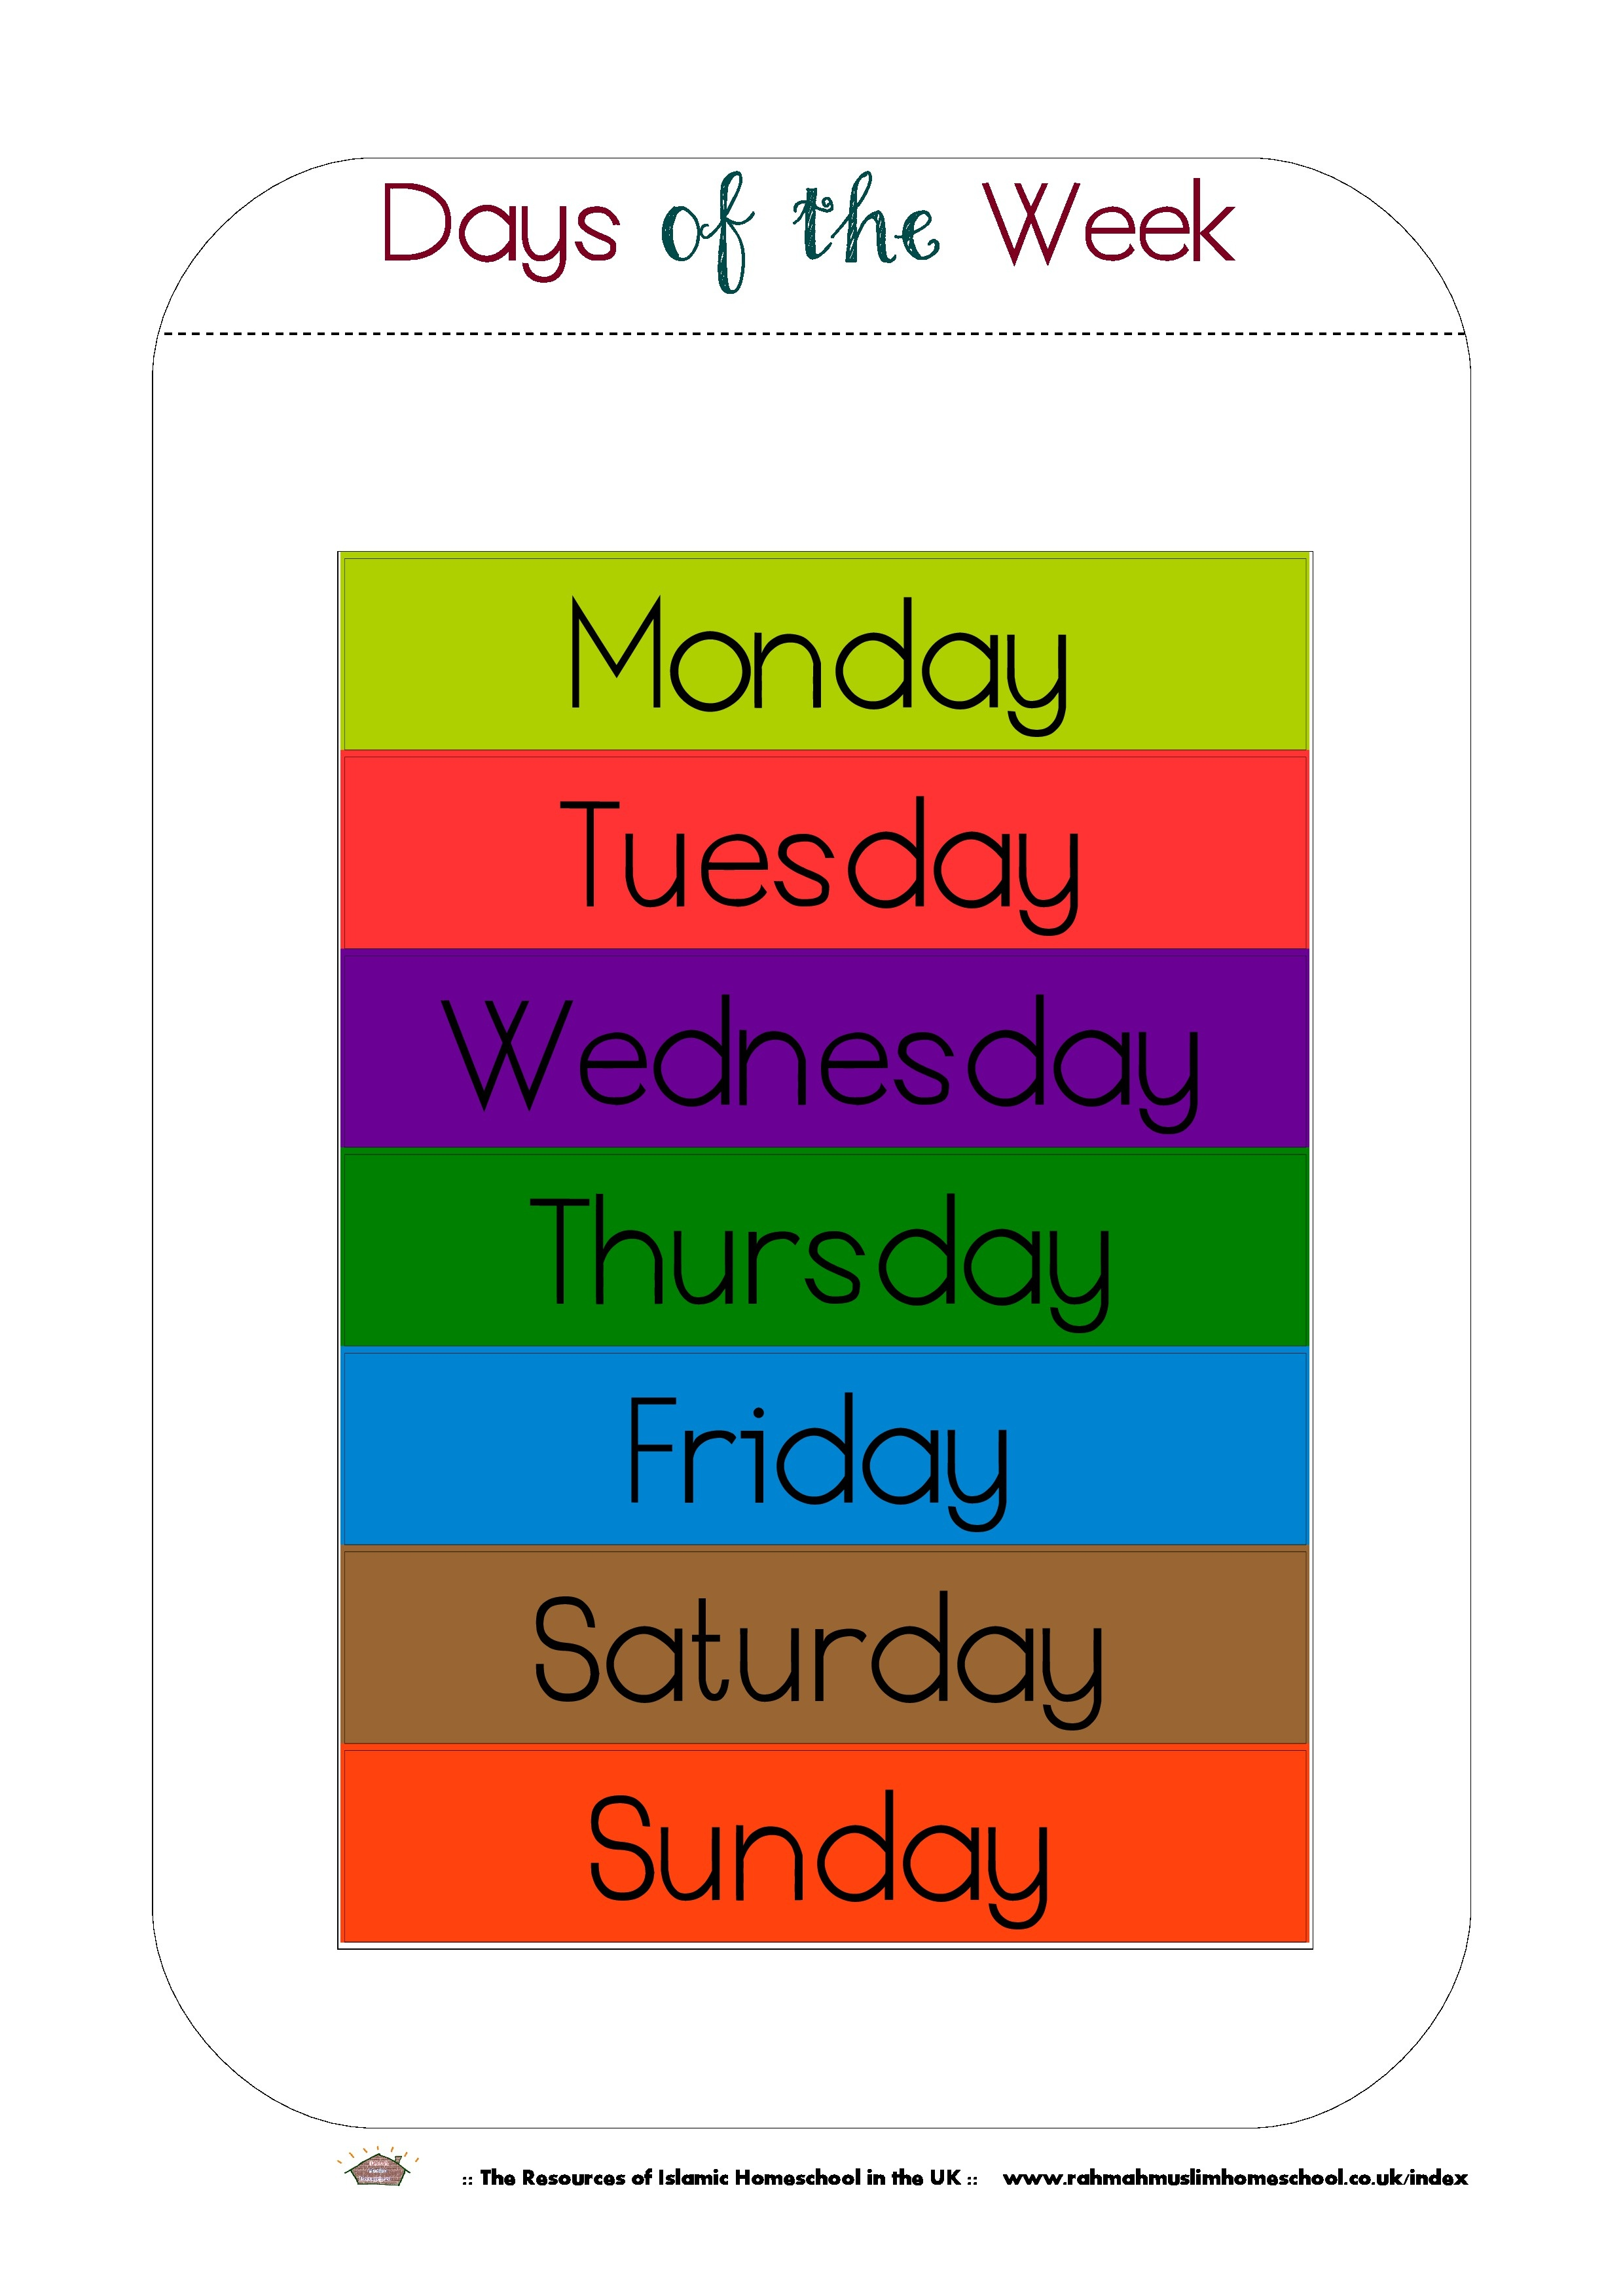 Free Printable Days Of The Week Workbook And Poster | The Resources - Free Printable Preschool Posters